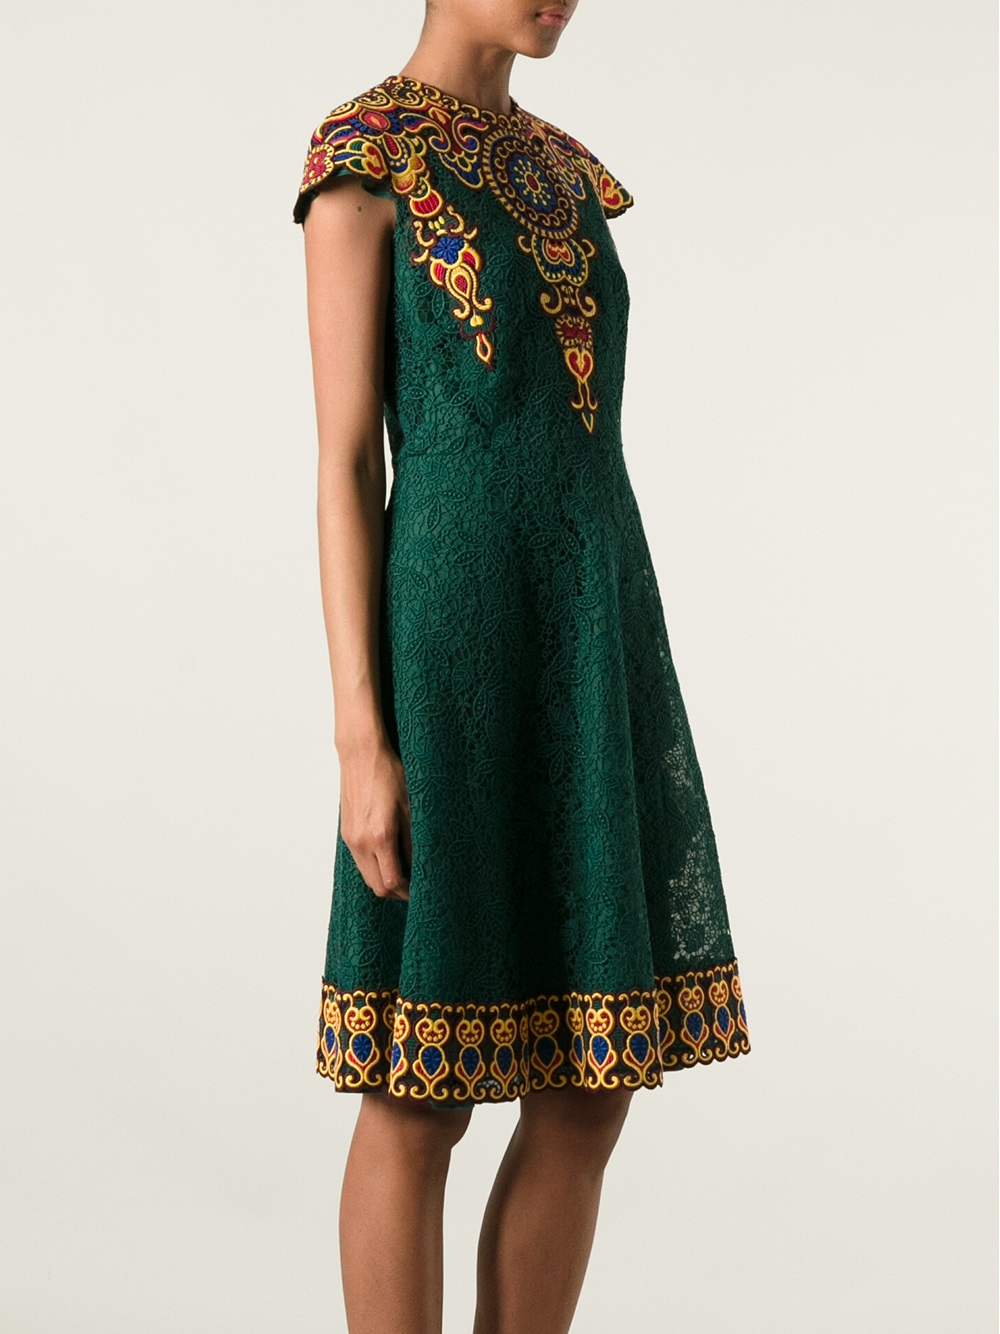 Valentino Embroidered Floral Lace Dress In Green Lyst